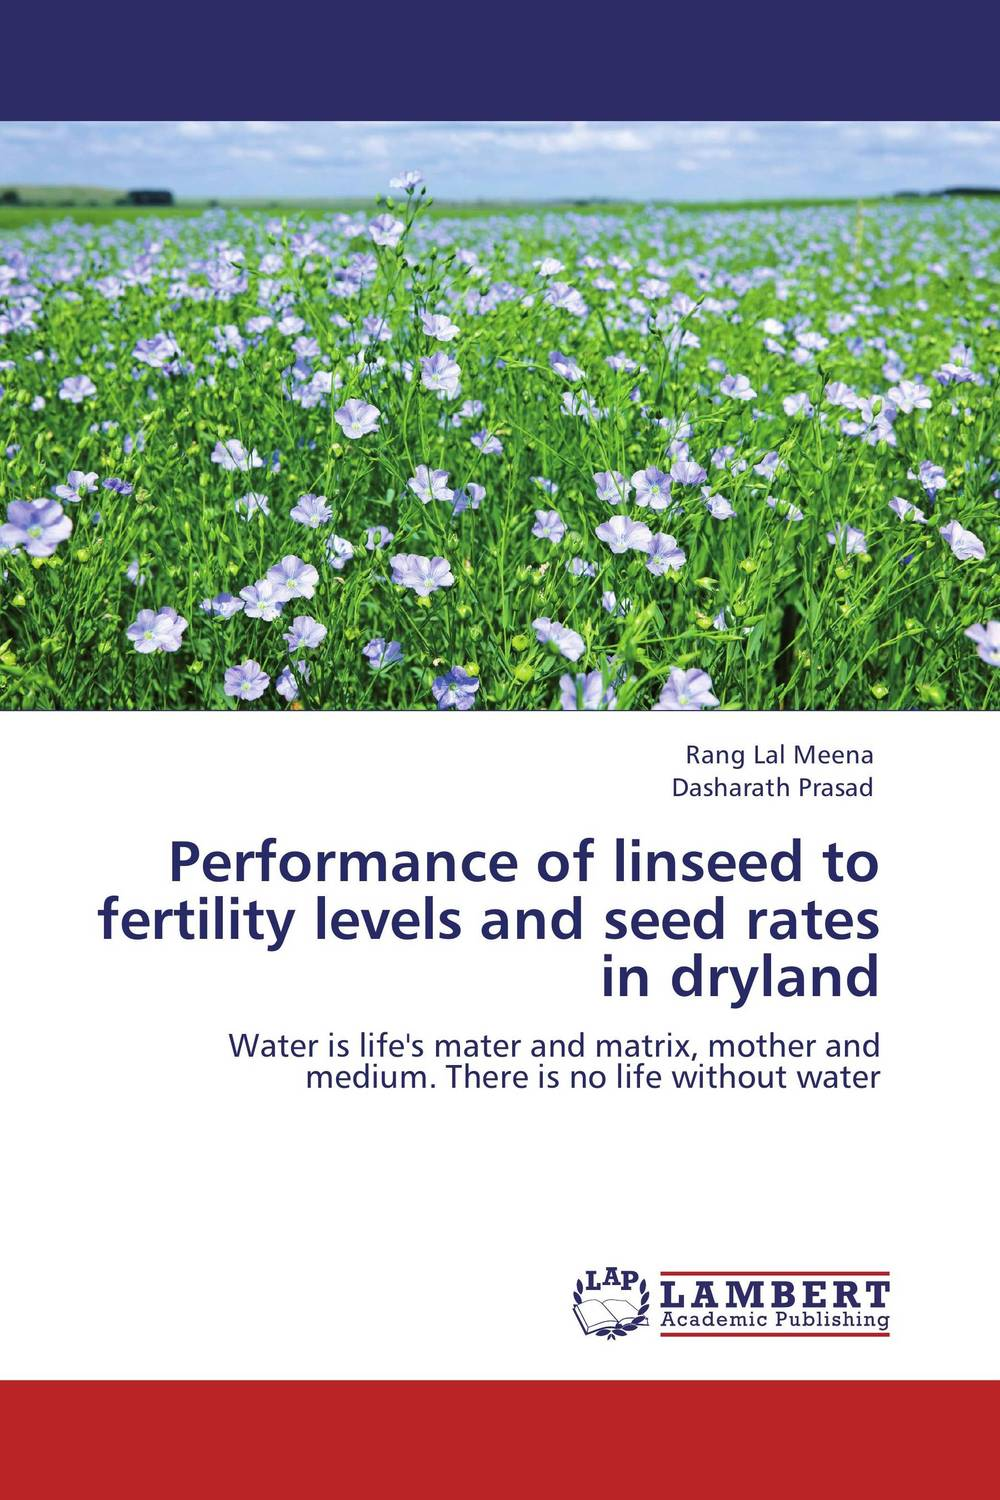 Performance of linseed to fertility levels and seed rates in dryland the salmon who dared to leap higher